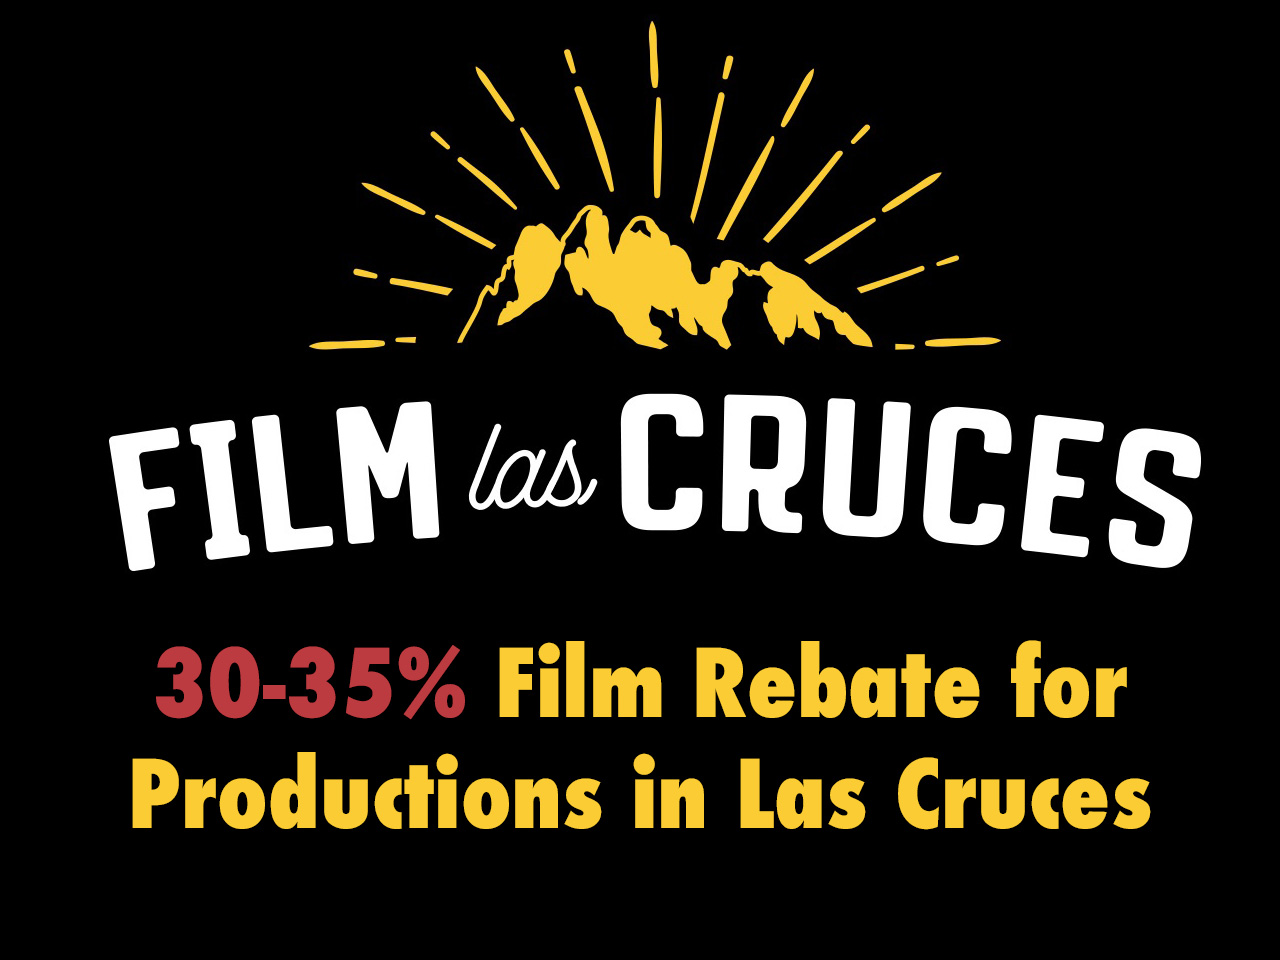 Film Las Cruces Helps Create New State Film Incentive – Extra 5% Film Credit Will Help Emerging Film Communities